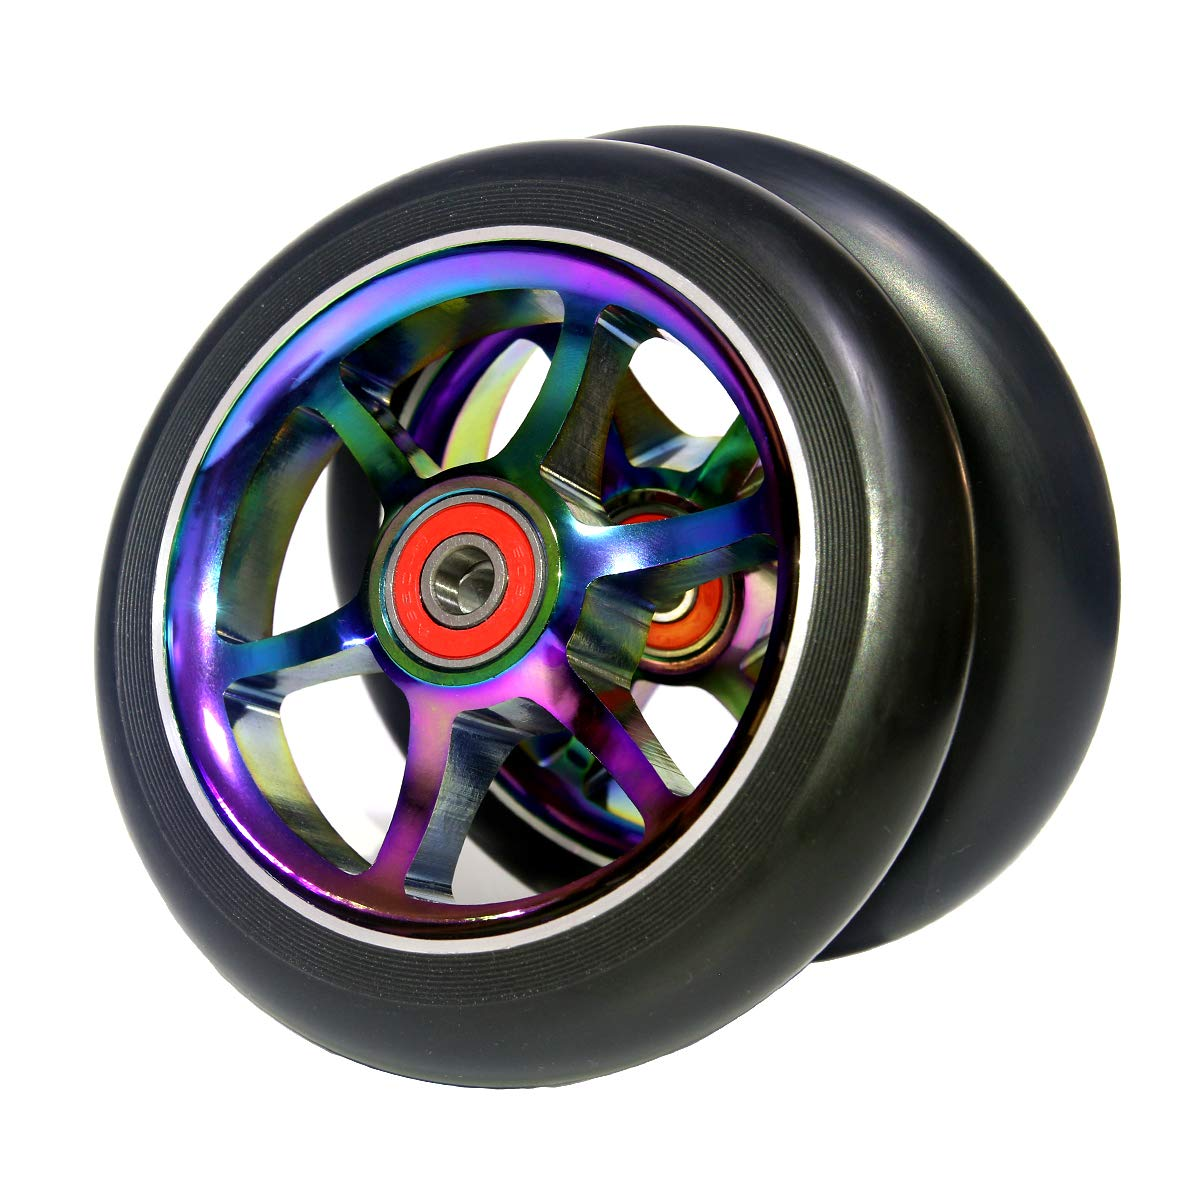 Z-FIRST 2pcs Replacement 120mm Pro Scooter Wheels with ABEC 9 Bearings Fit for MGP//Razor//Lucky Pro Scooters